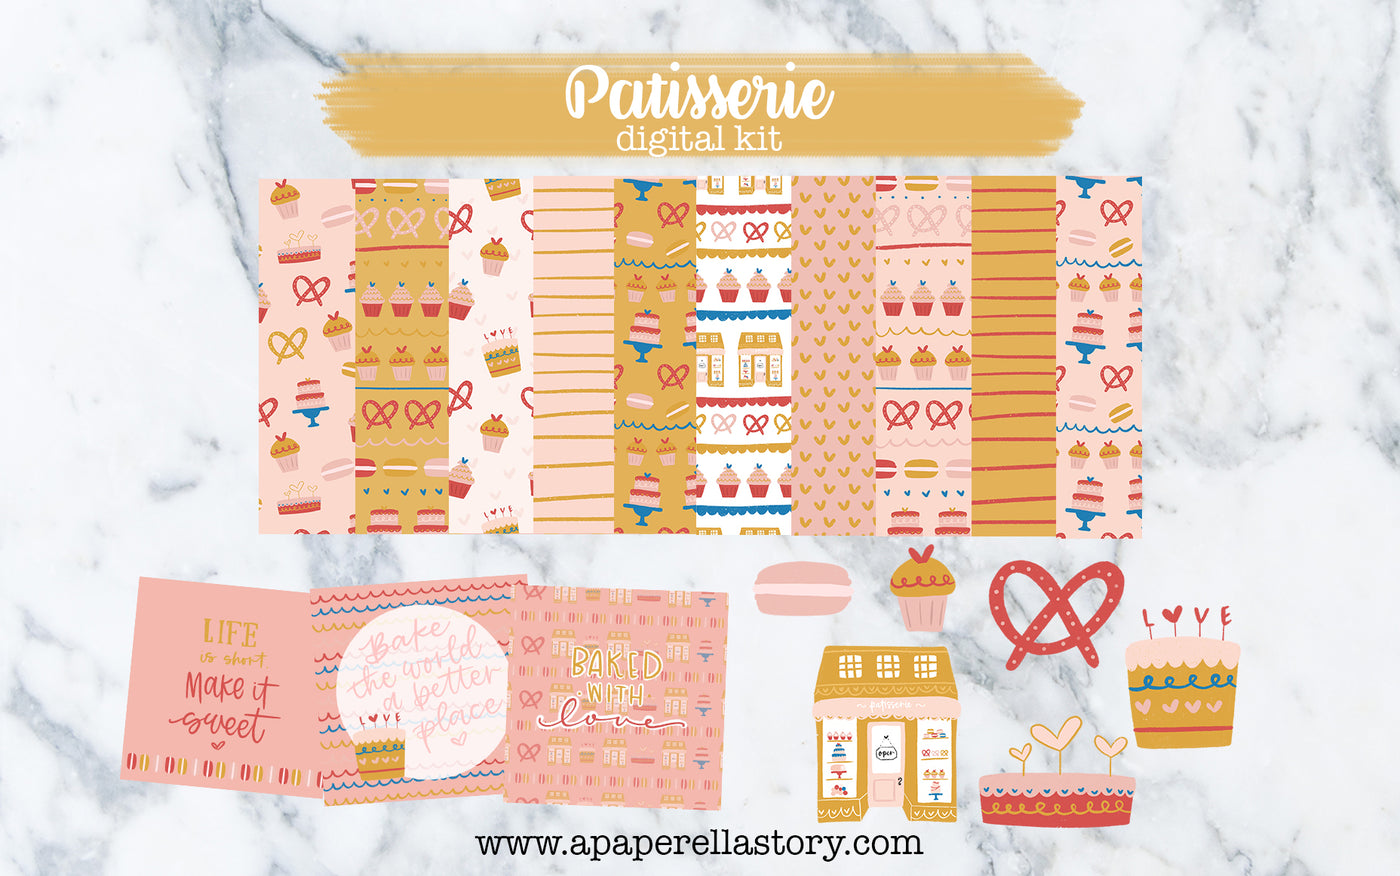 Patisserie - Digital Kit